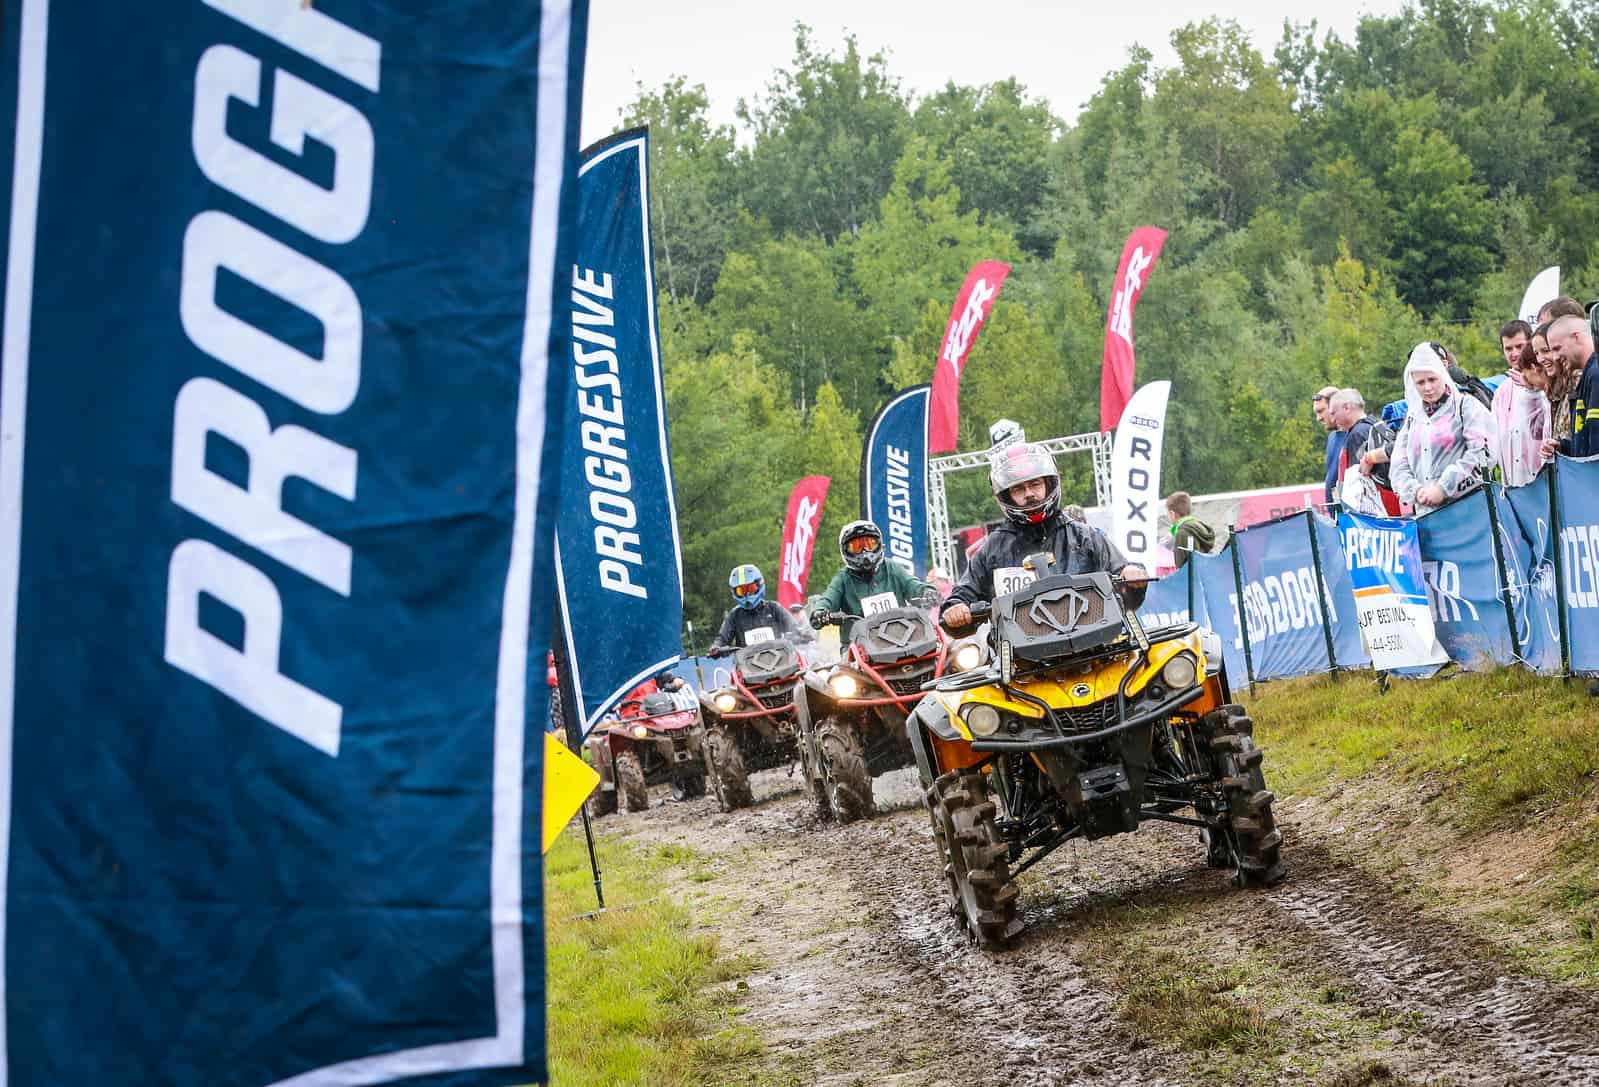 The mudpit is a great event at the Jericho ATV Festival